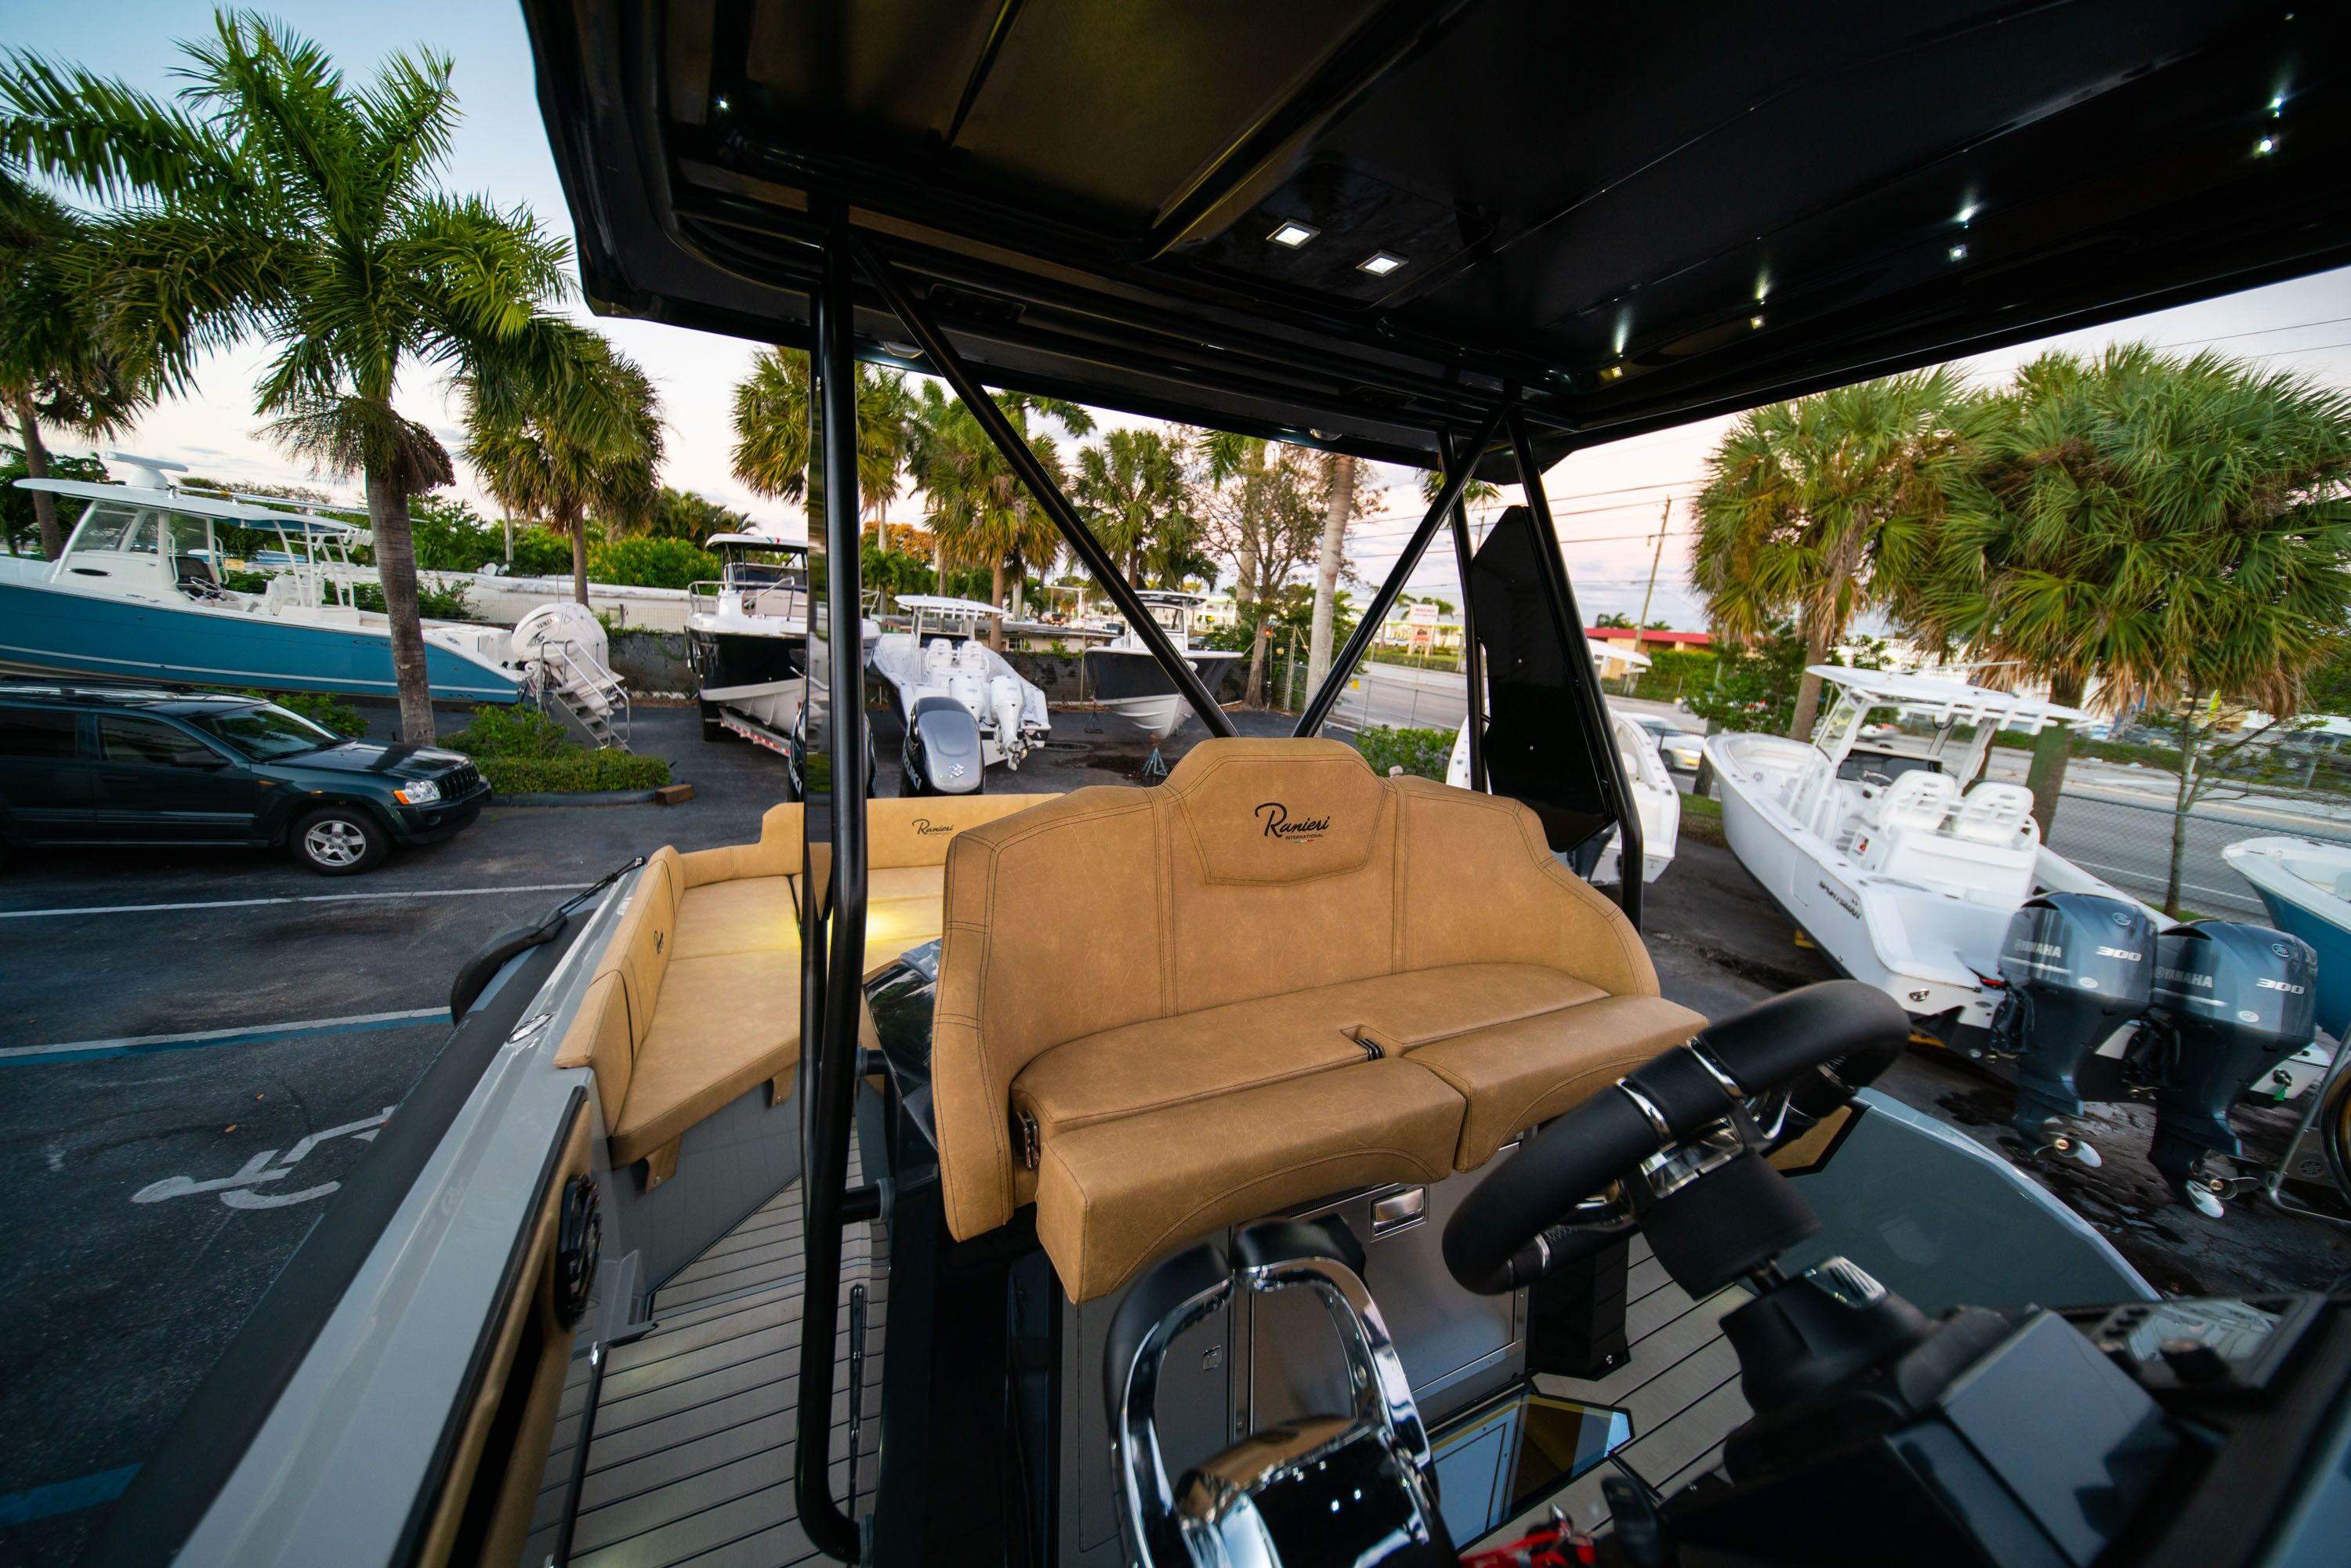 Thumbnail 33 for New 2019 Ranieri Cayman 38 Executive boat for sale in West Palm Beach, FL